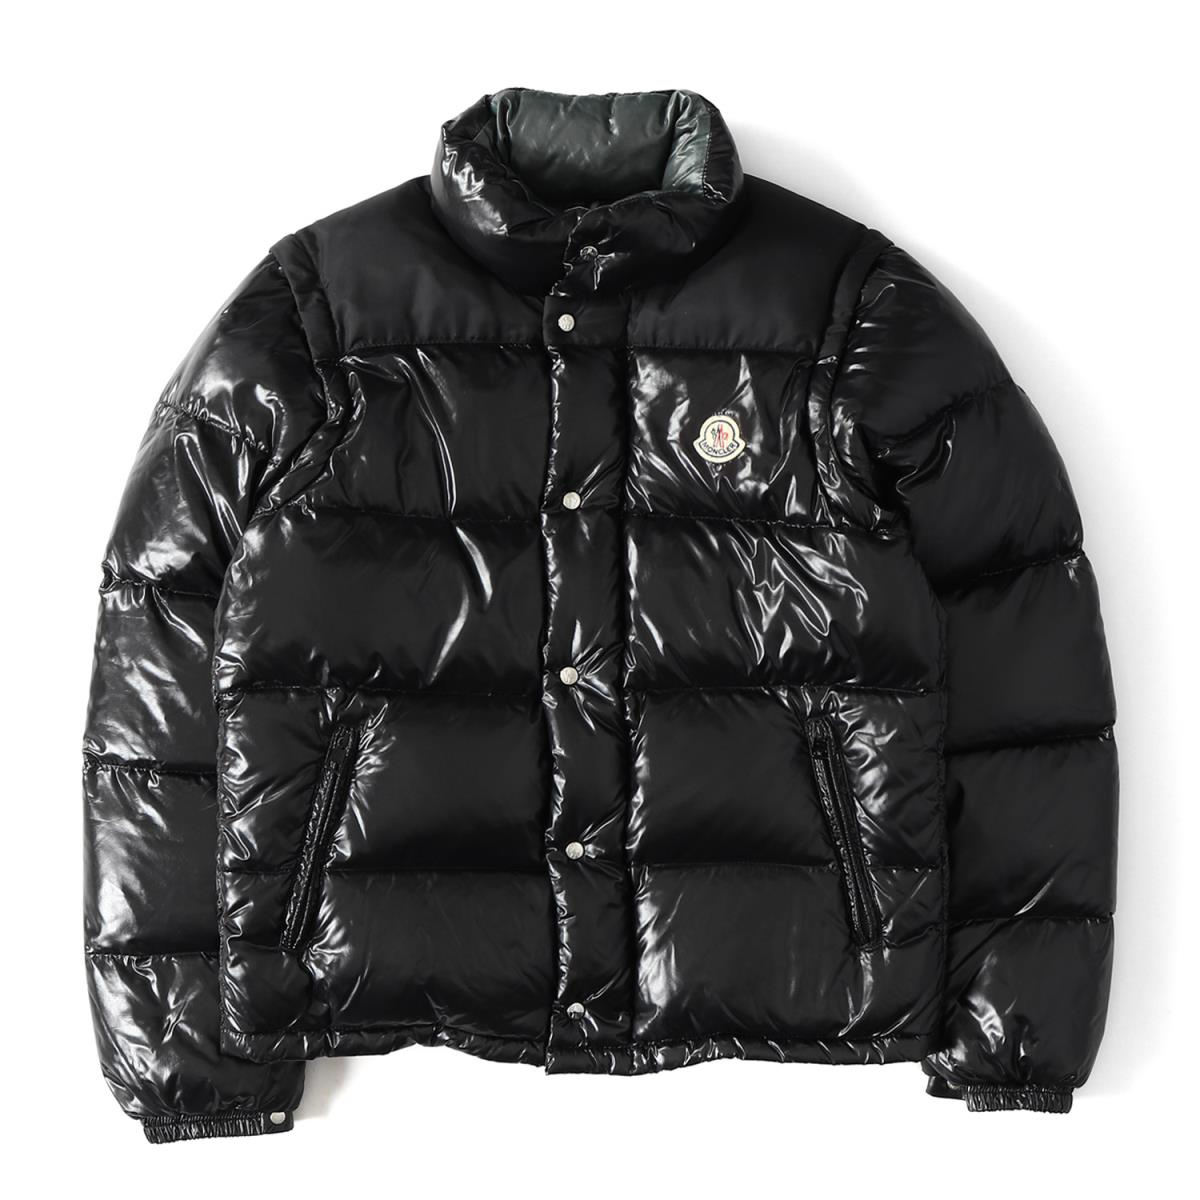 9c1020c93301 BEEGLE by Boo-Bee  MONCLER (Monk rail) 2WAY nylon full zip down ...